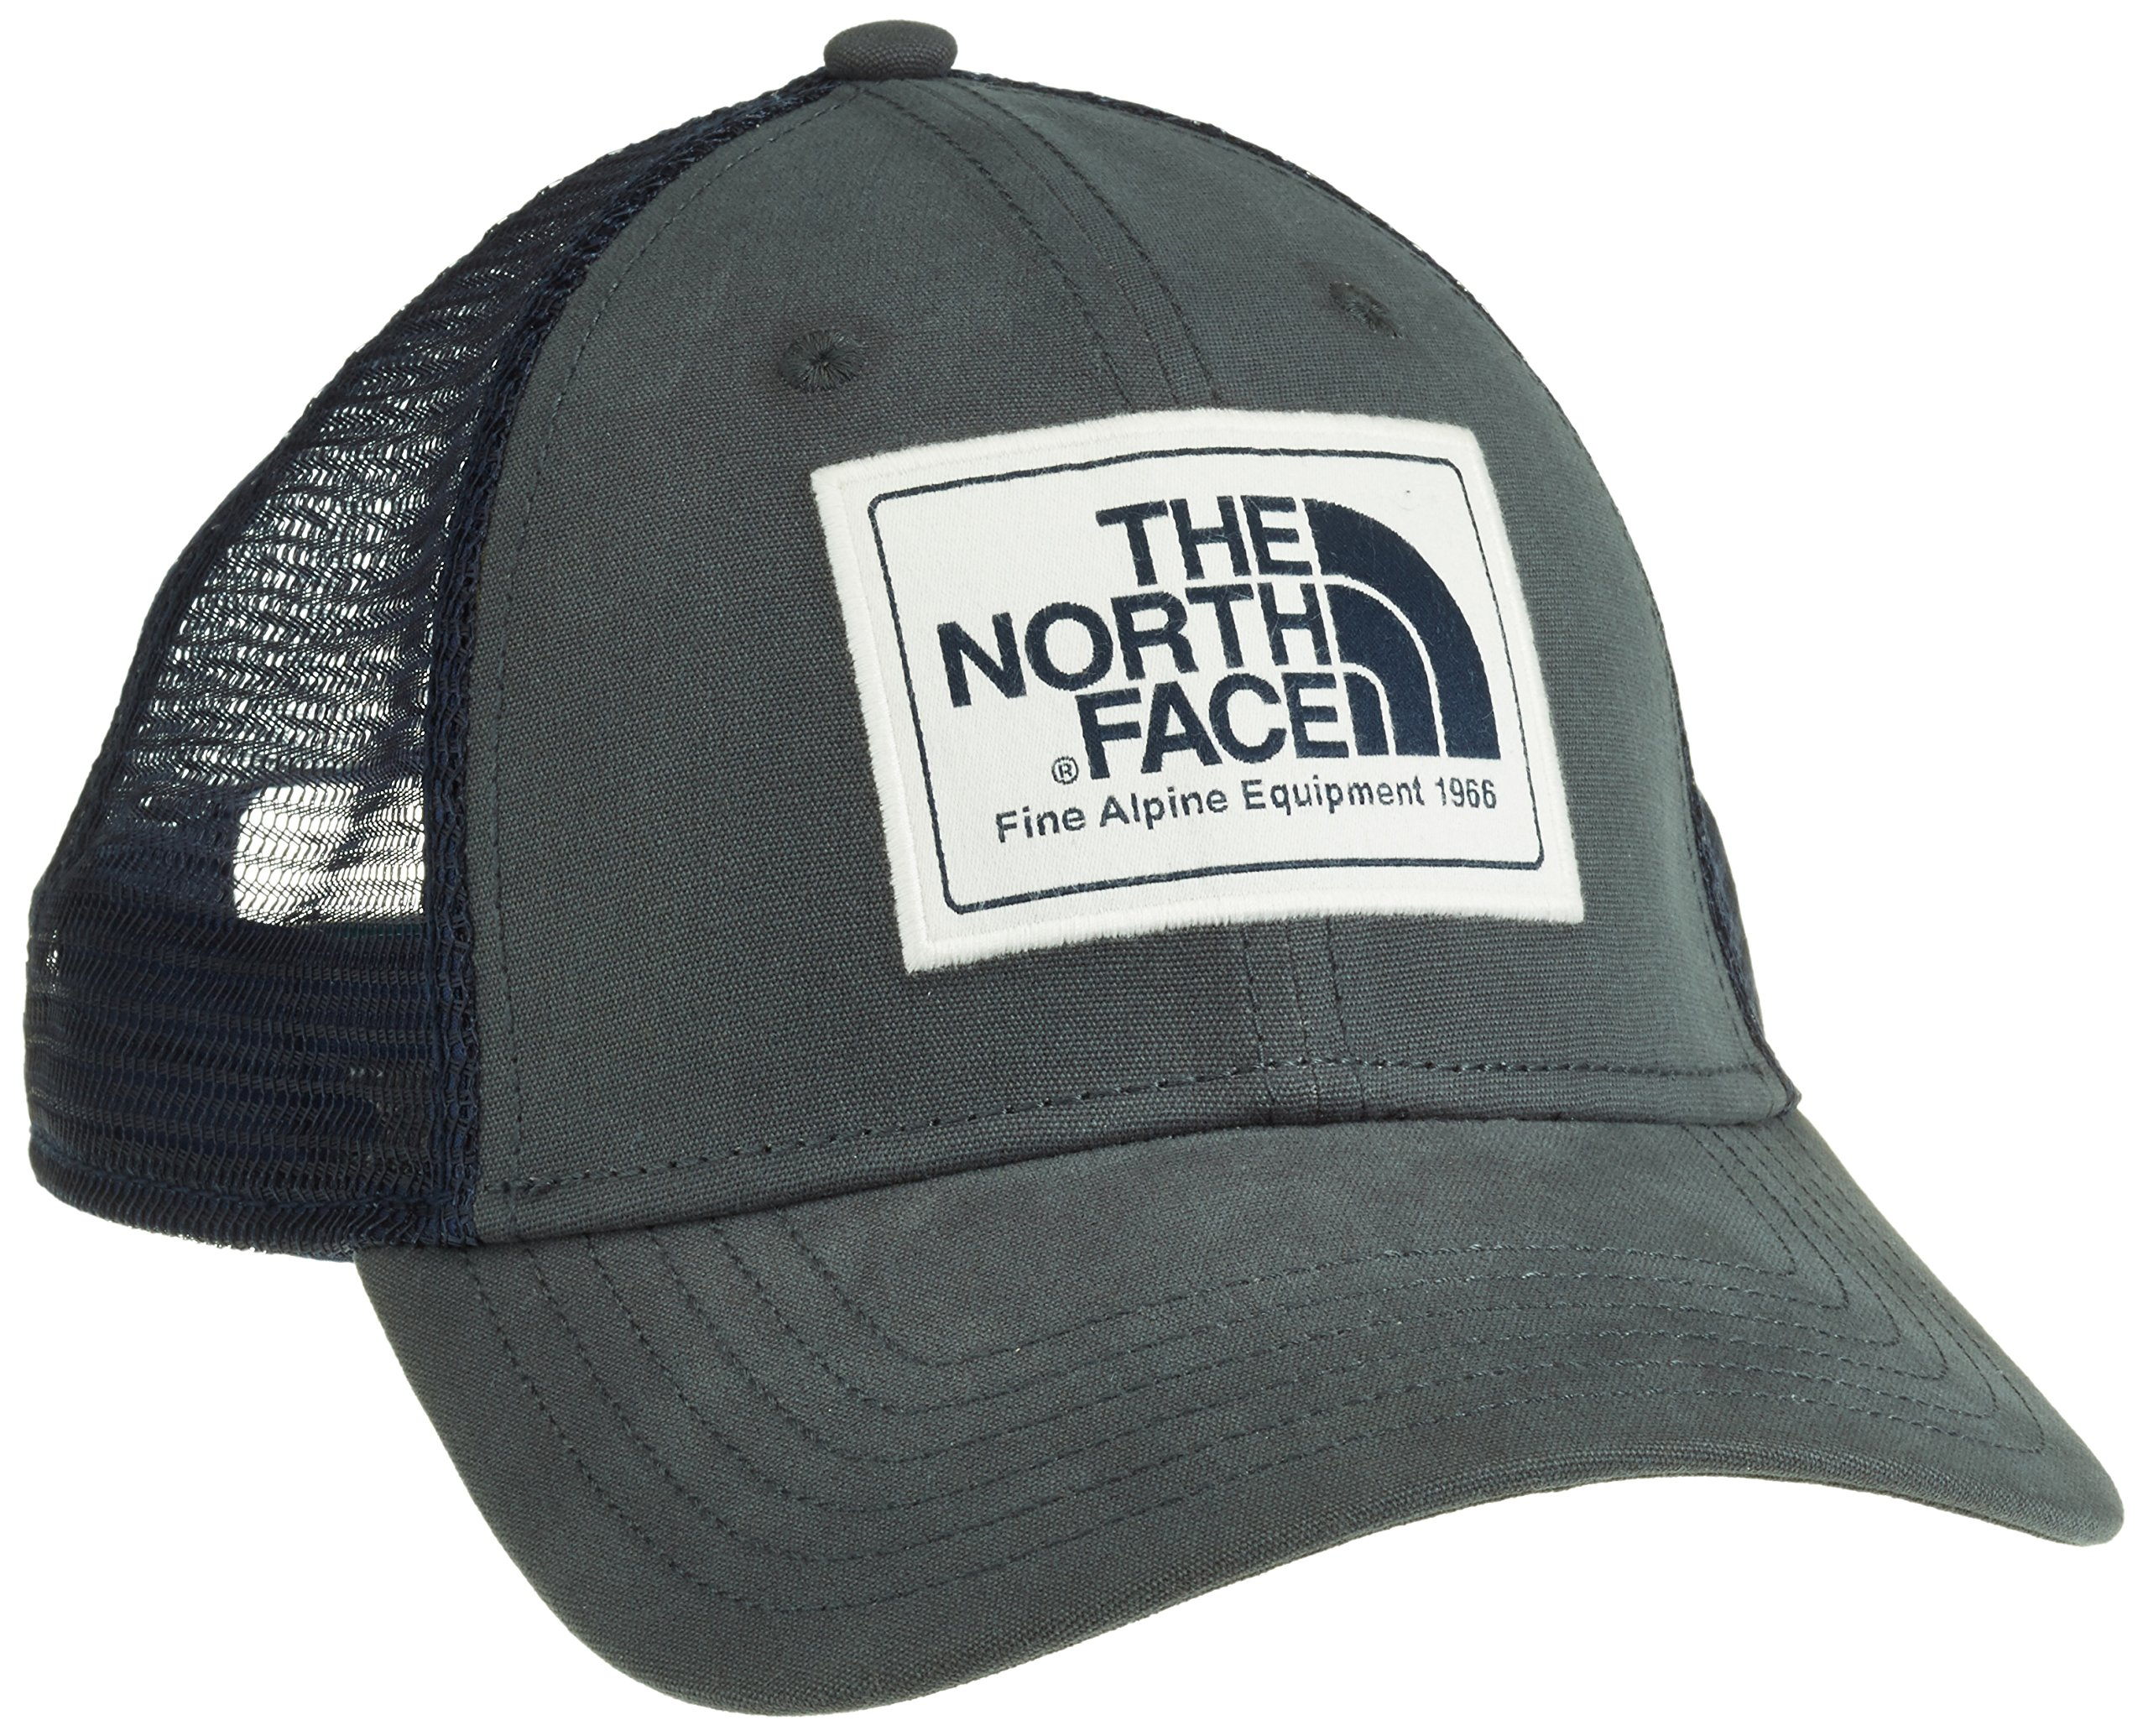 The North Face Kappe Mudder Trucker Hat Gorra, Unisex, Marrón ...